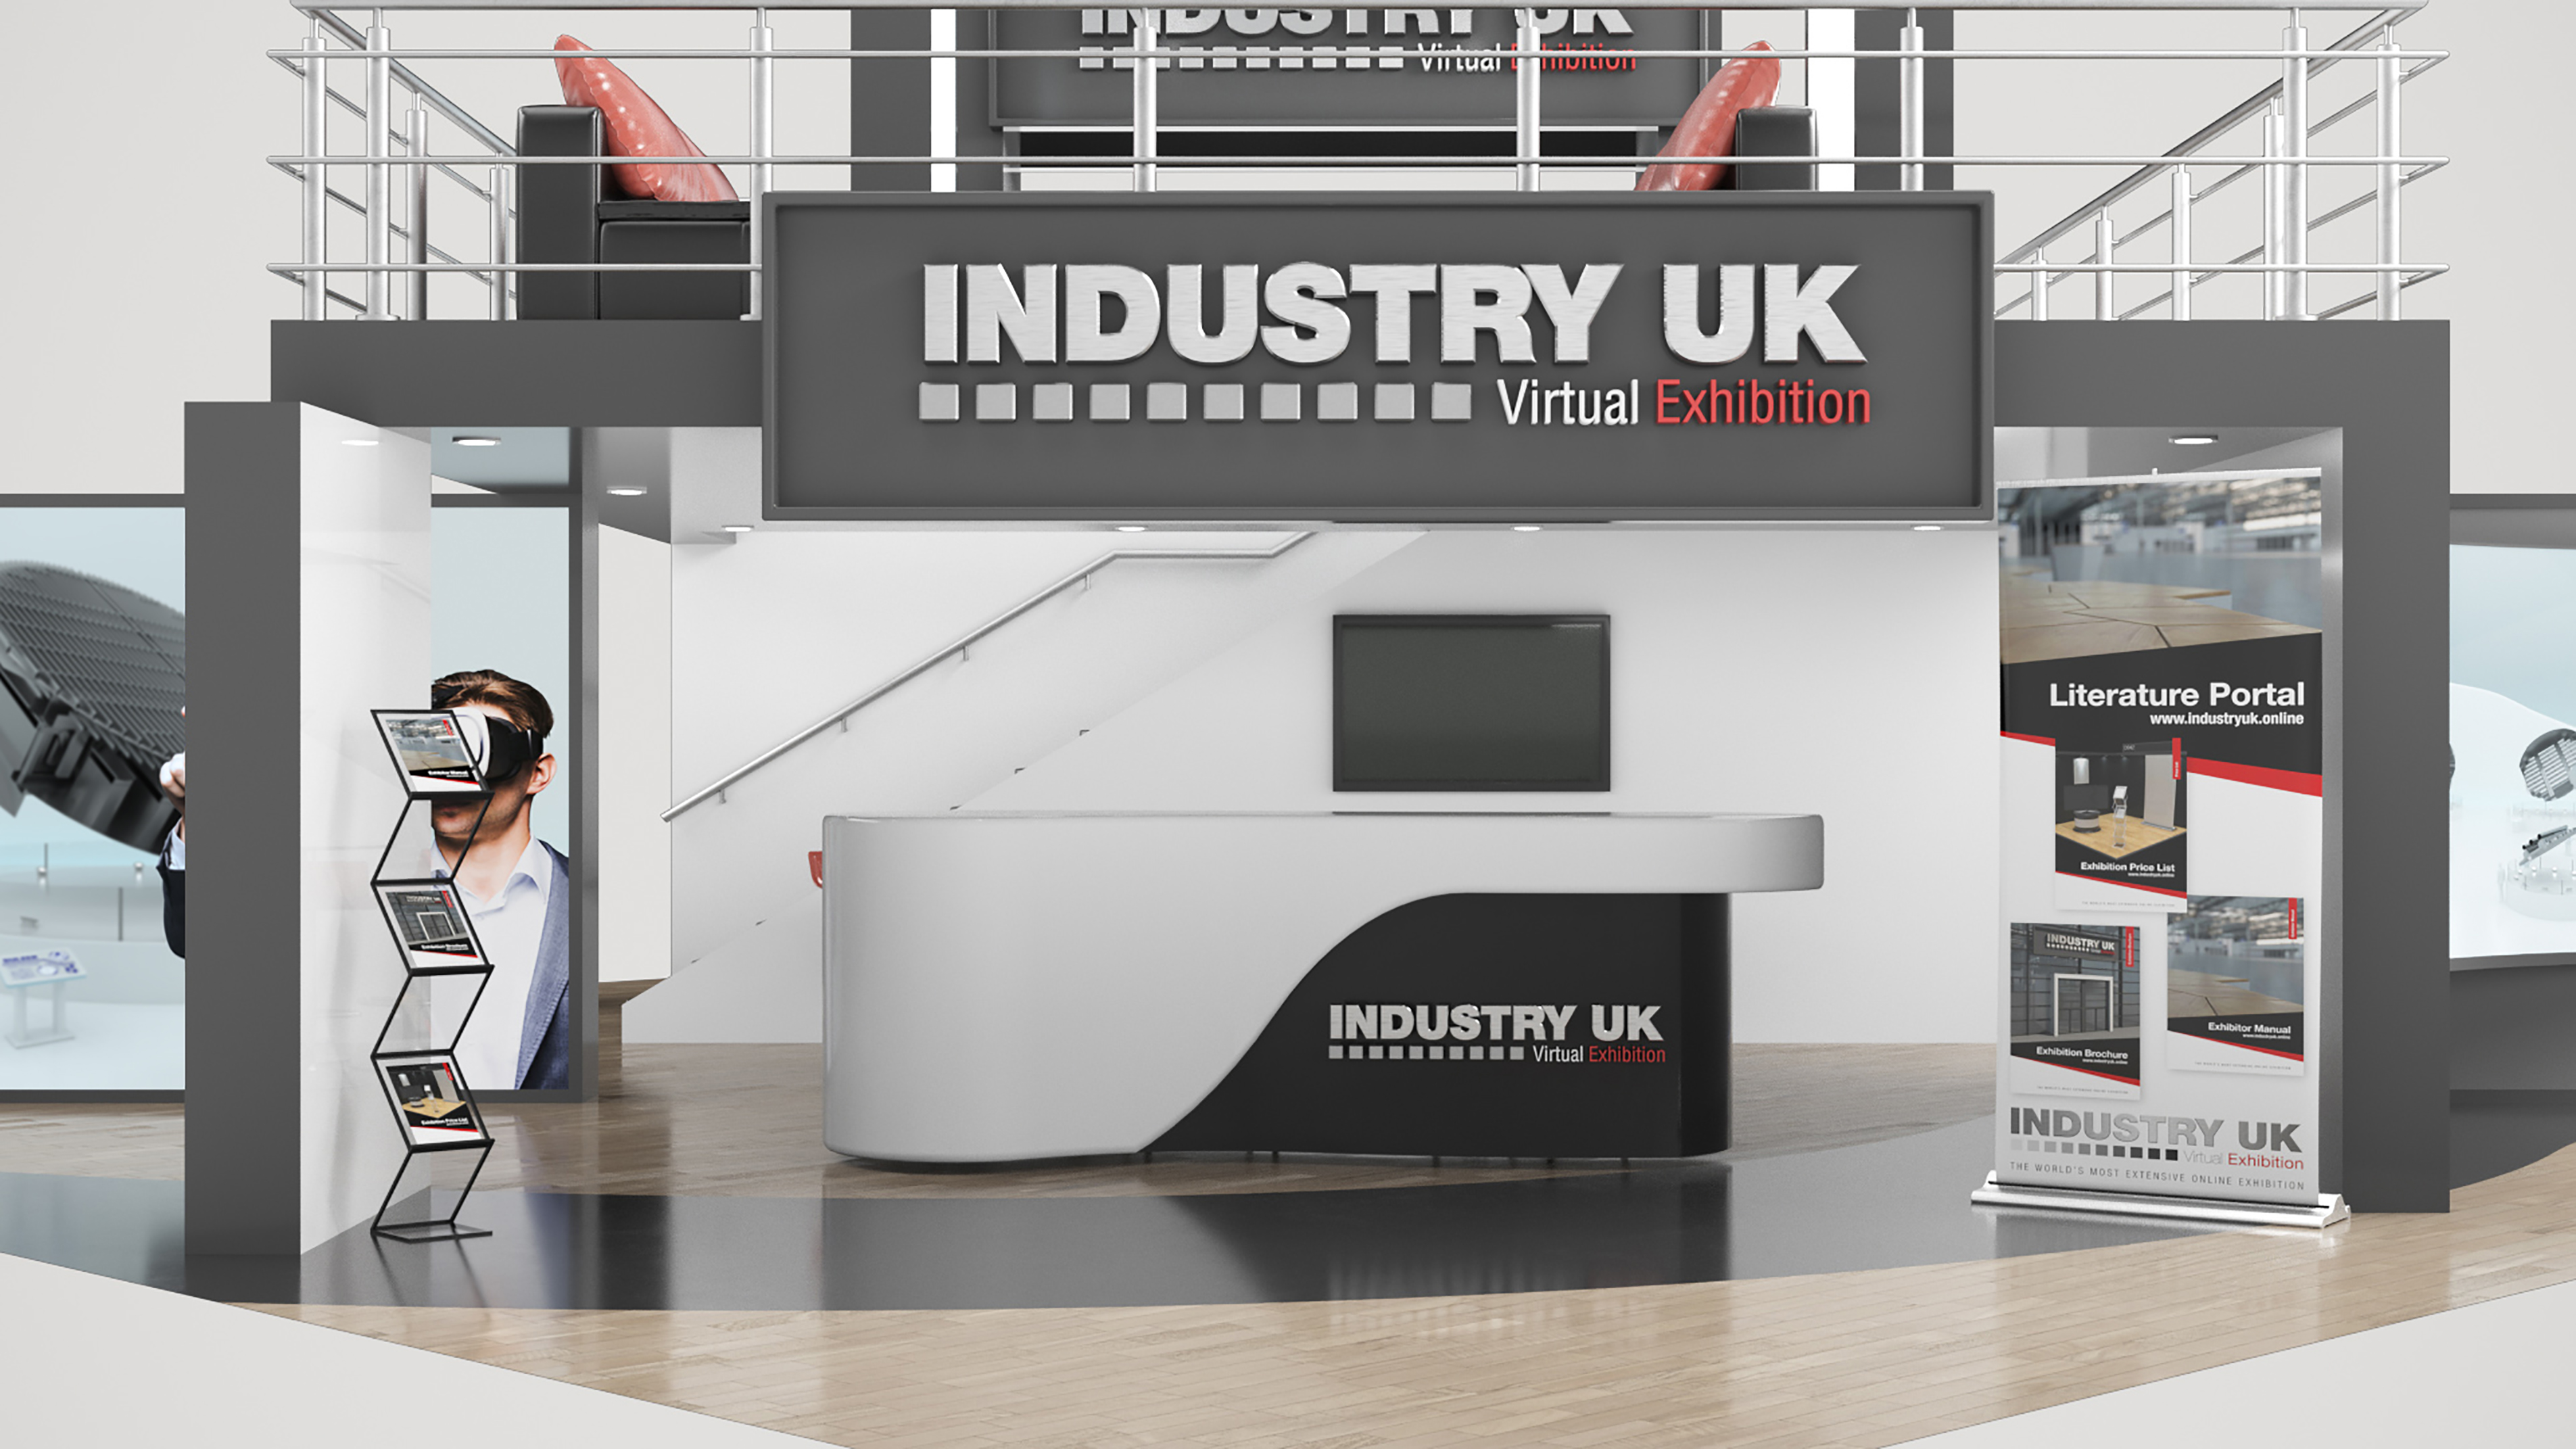 Introducing the ground-breaking IndustryUK virtual exhibition